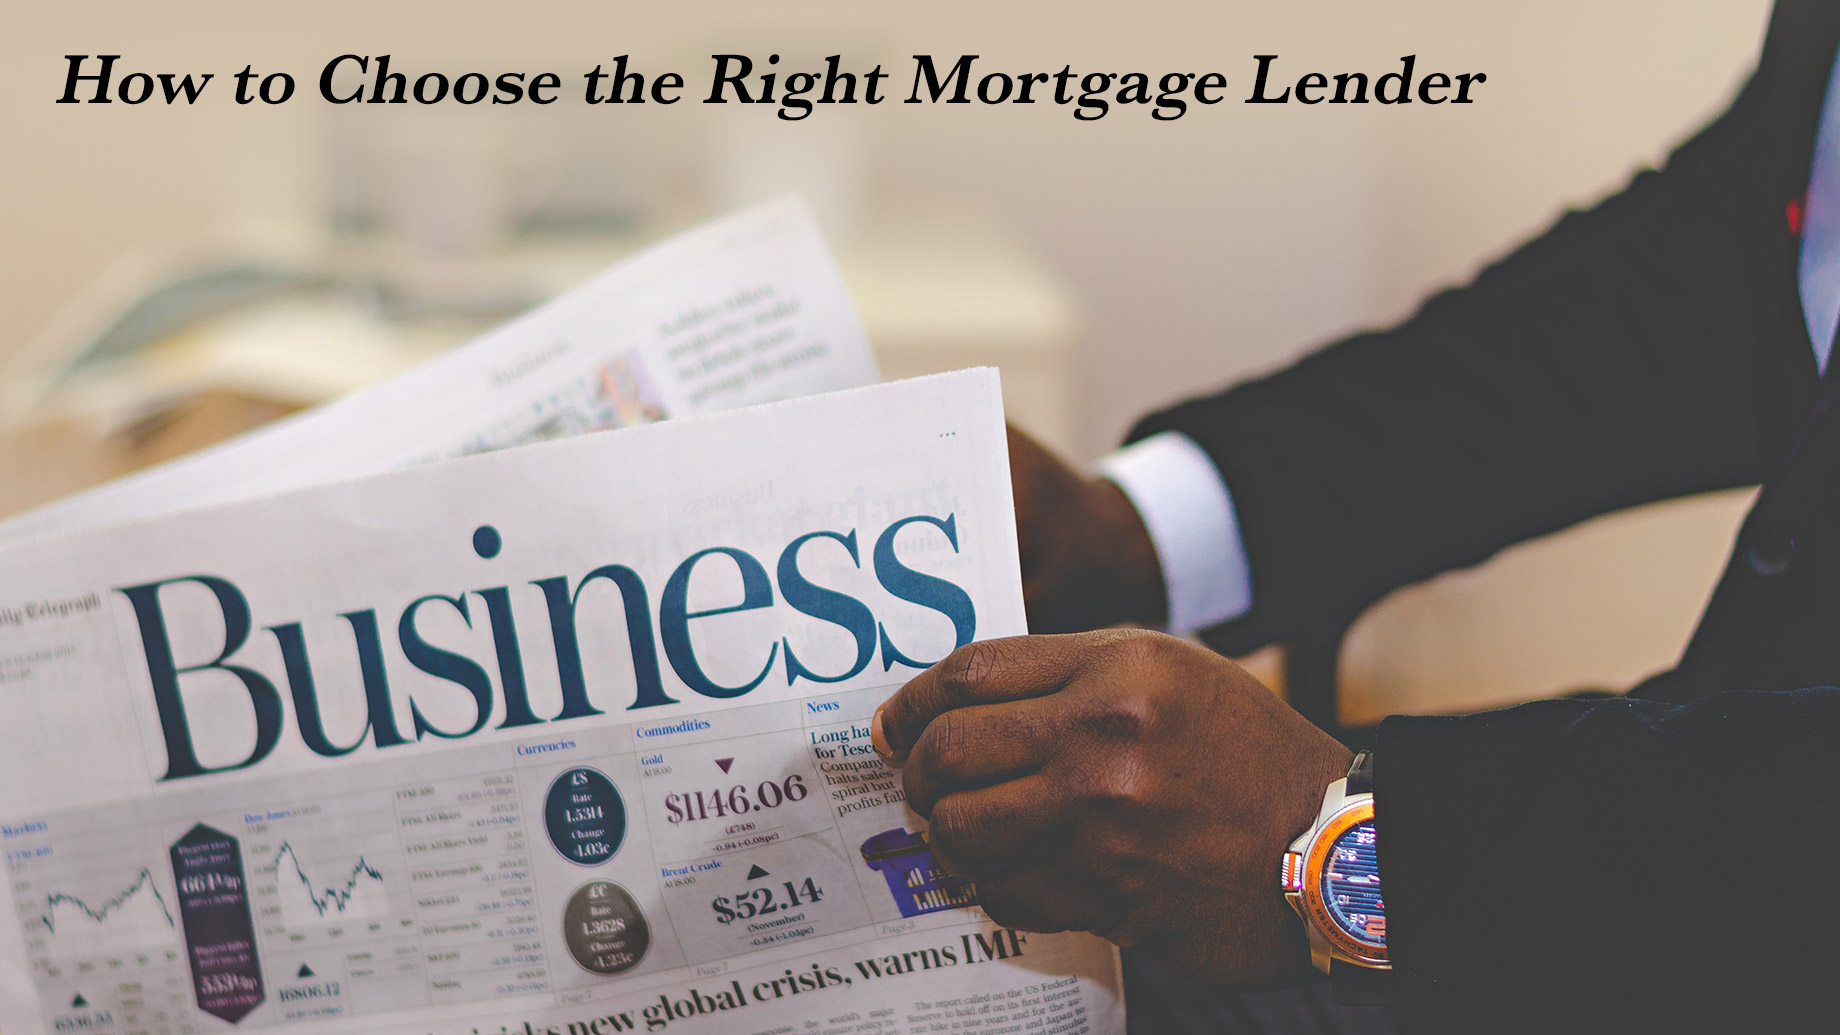 How to Choose the Right Mortgage Lender